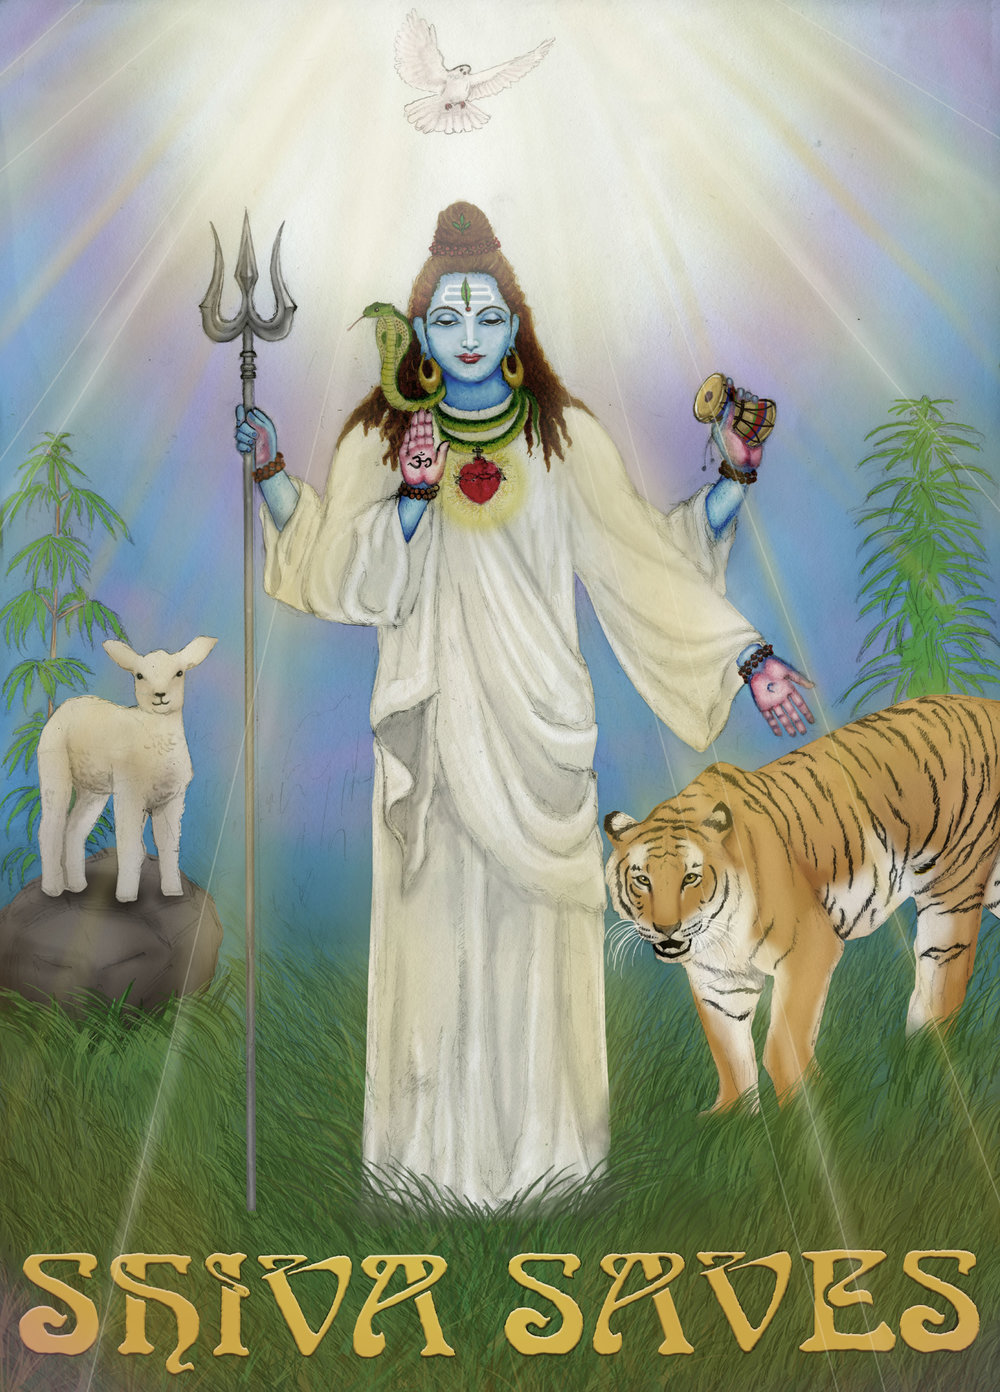 Shiva Saves Poster  €9.99–€14.99 Available in A4, A3